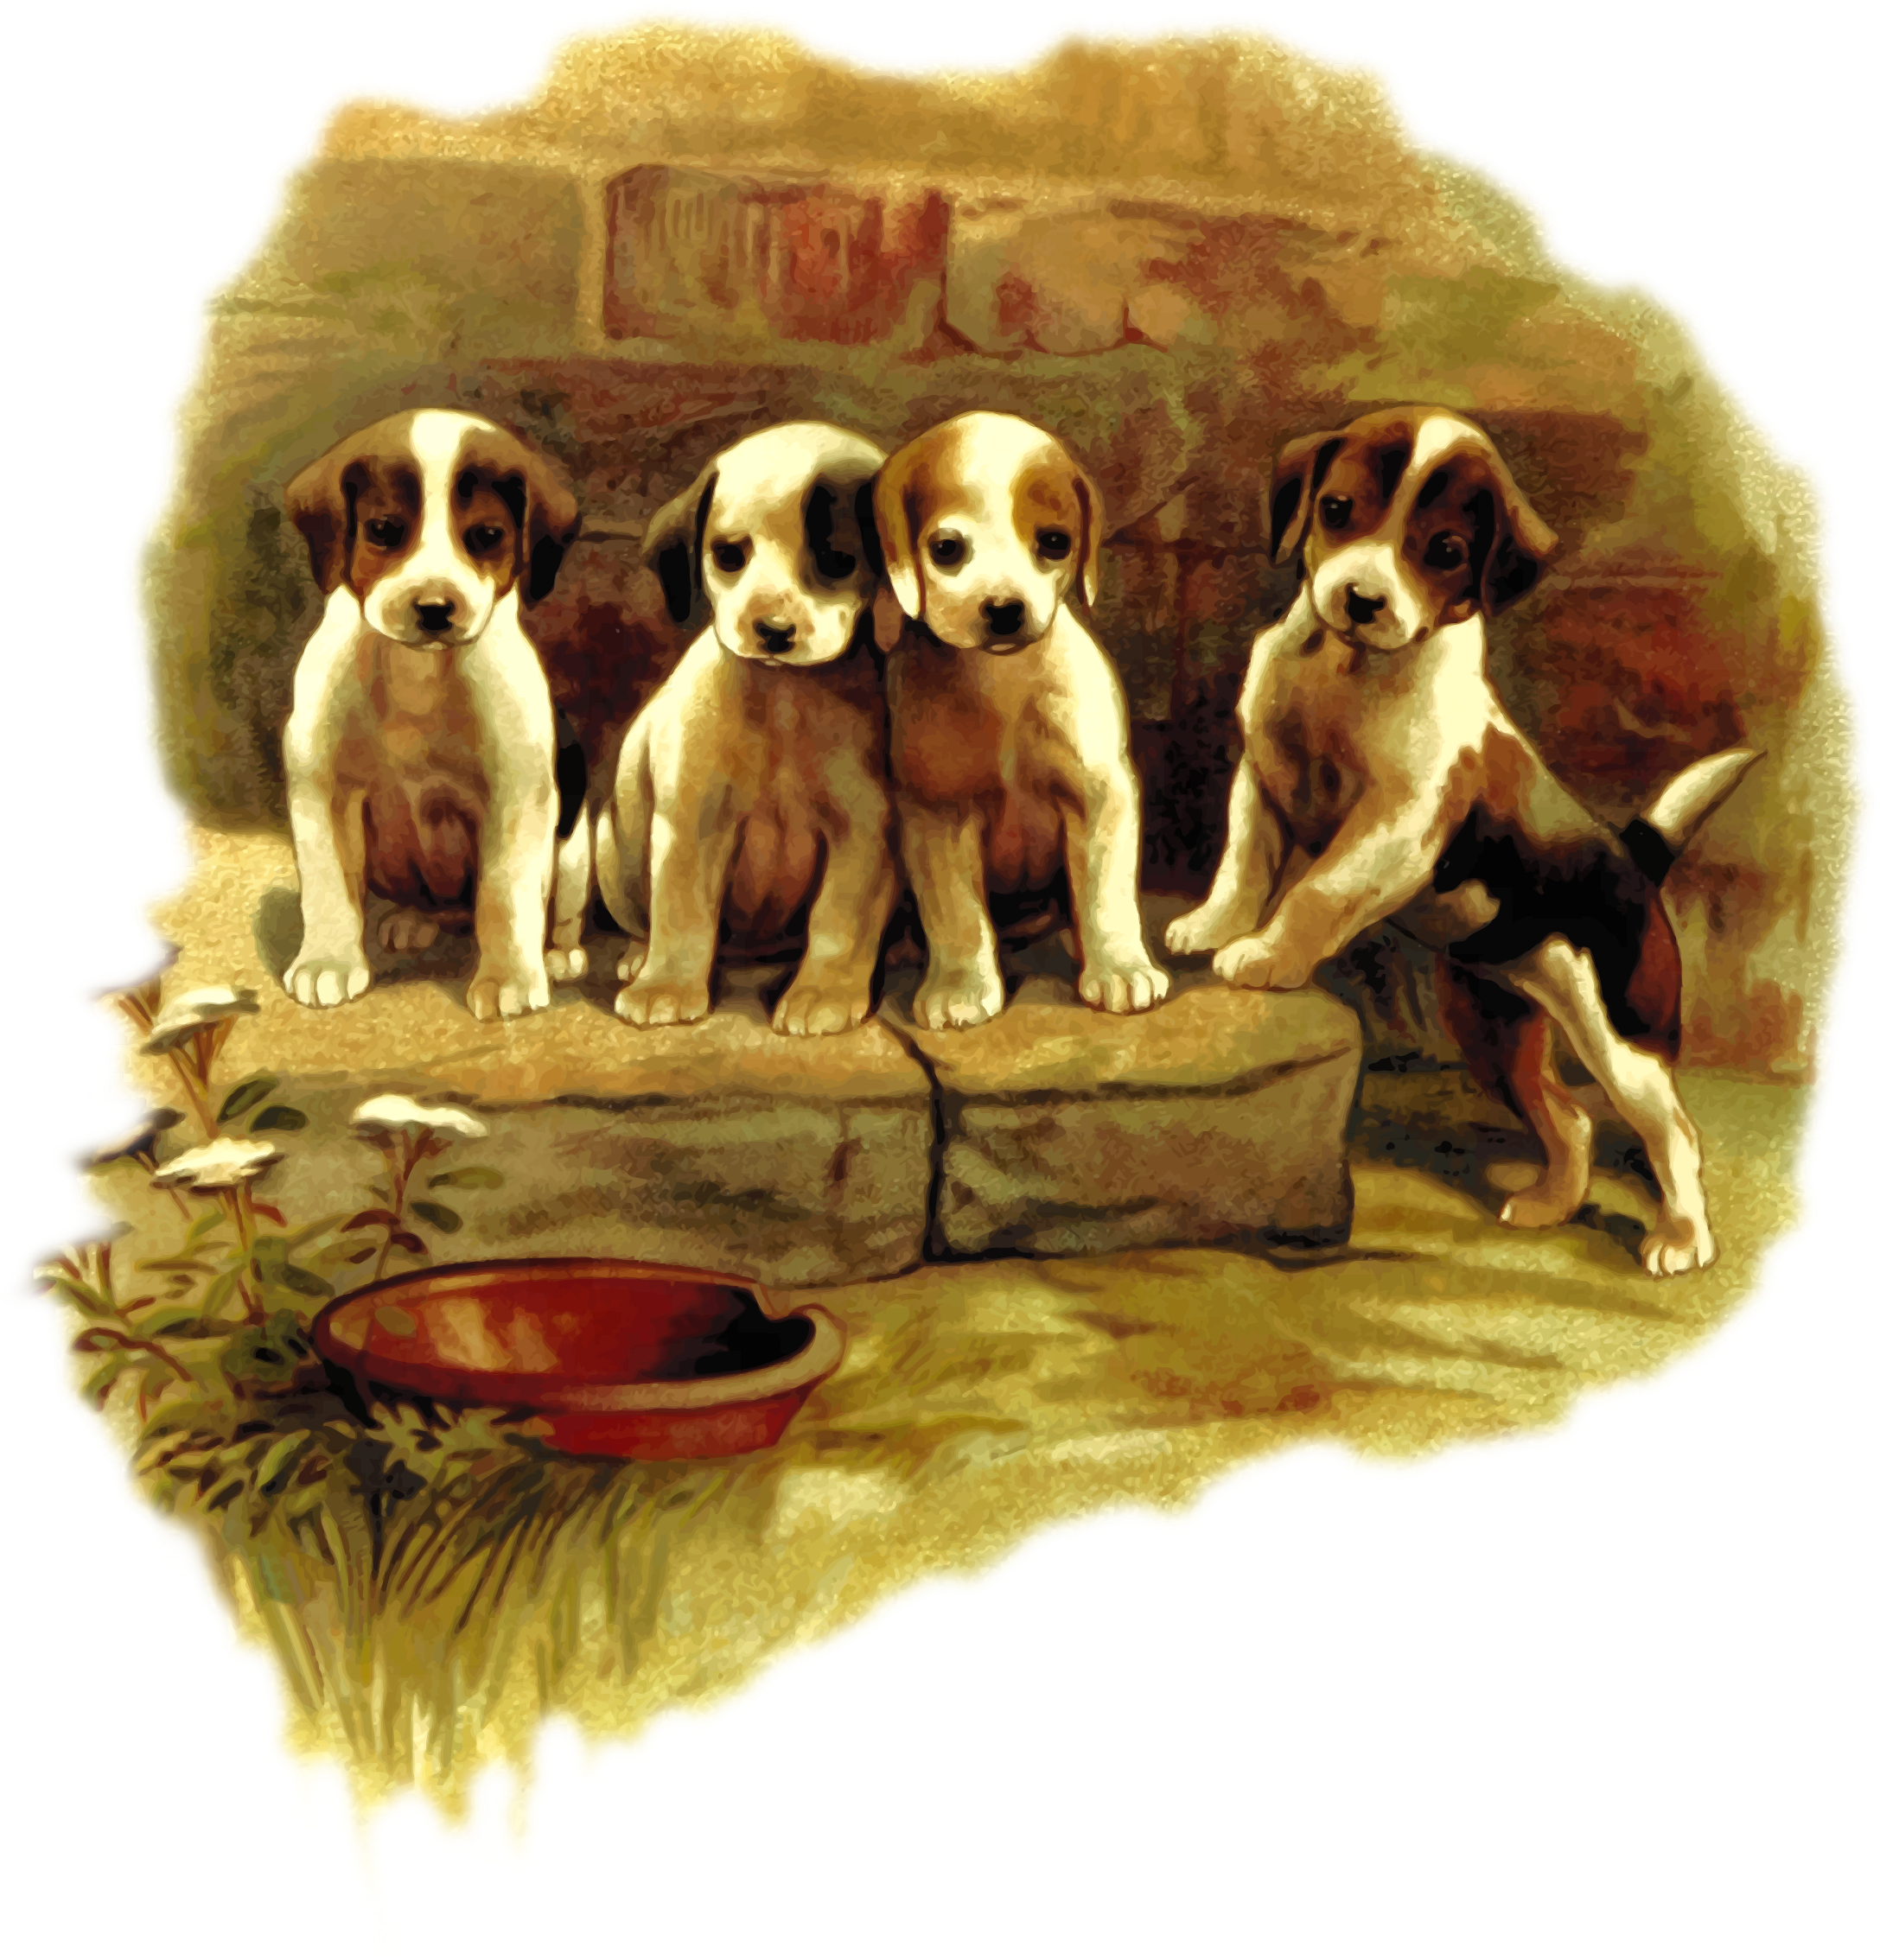 Cute dogs by Firkin